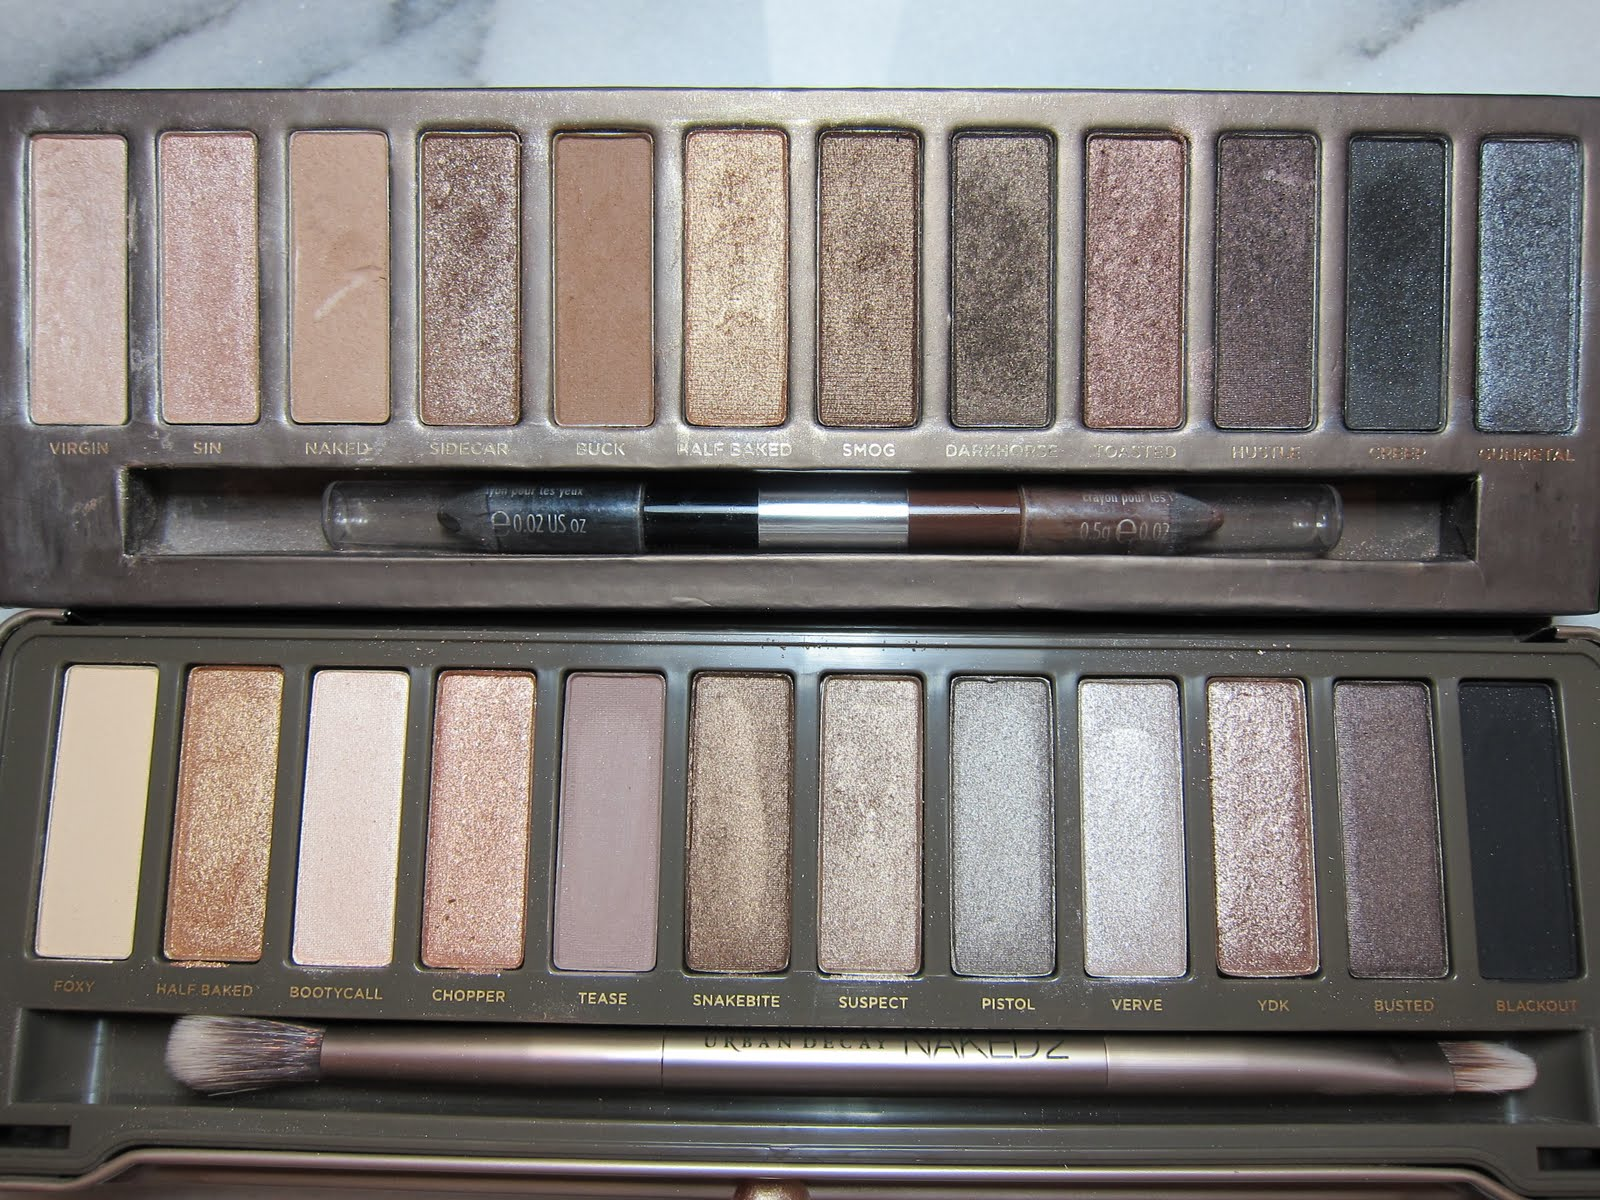 REVIEW: URBAN DECAY NAKED 2 & NAKED BASICS 2 PALETTE ... |Urban Decay Palette 2